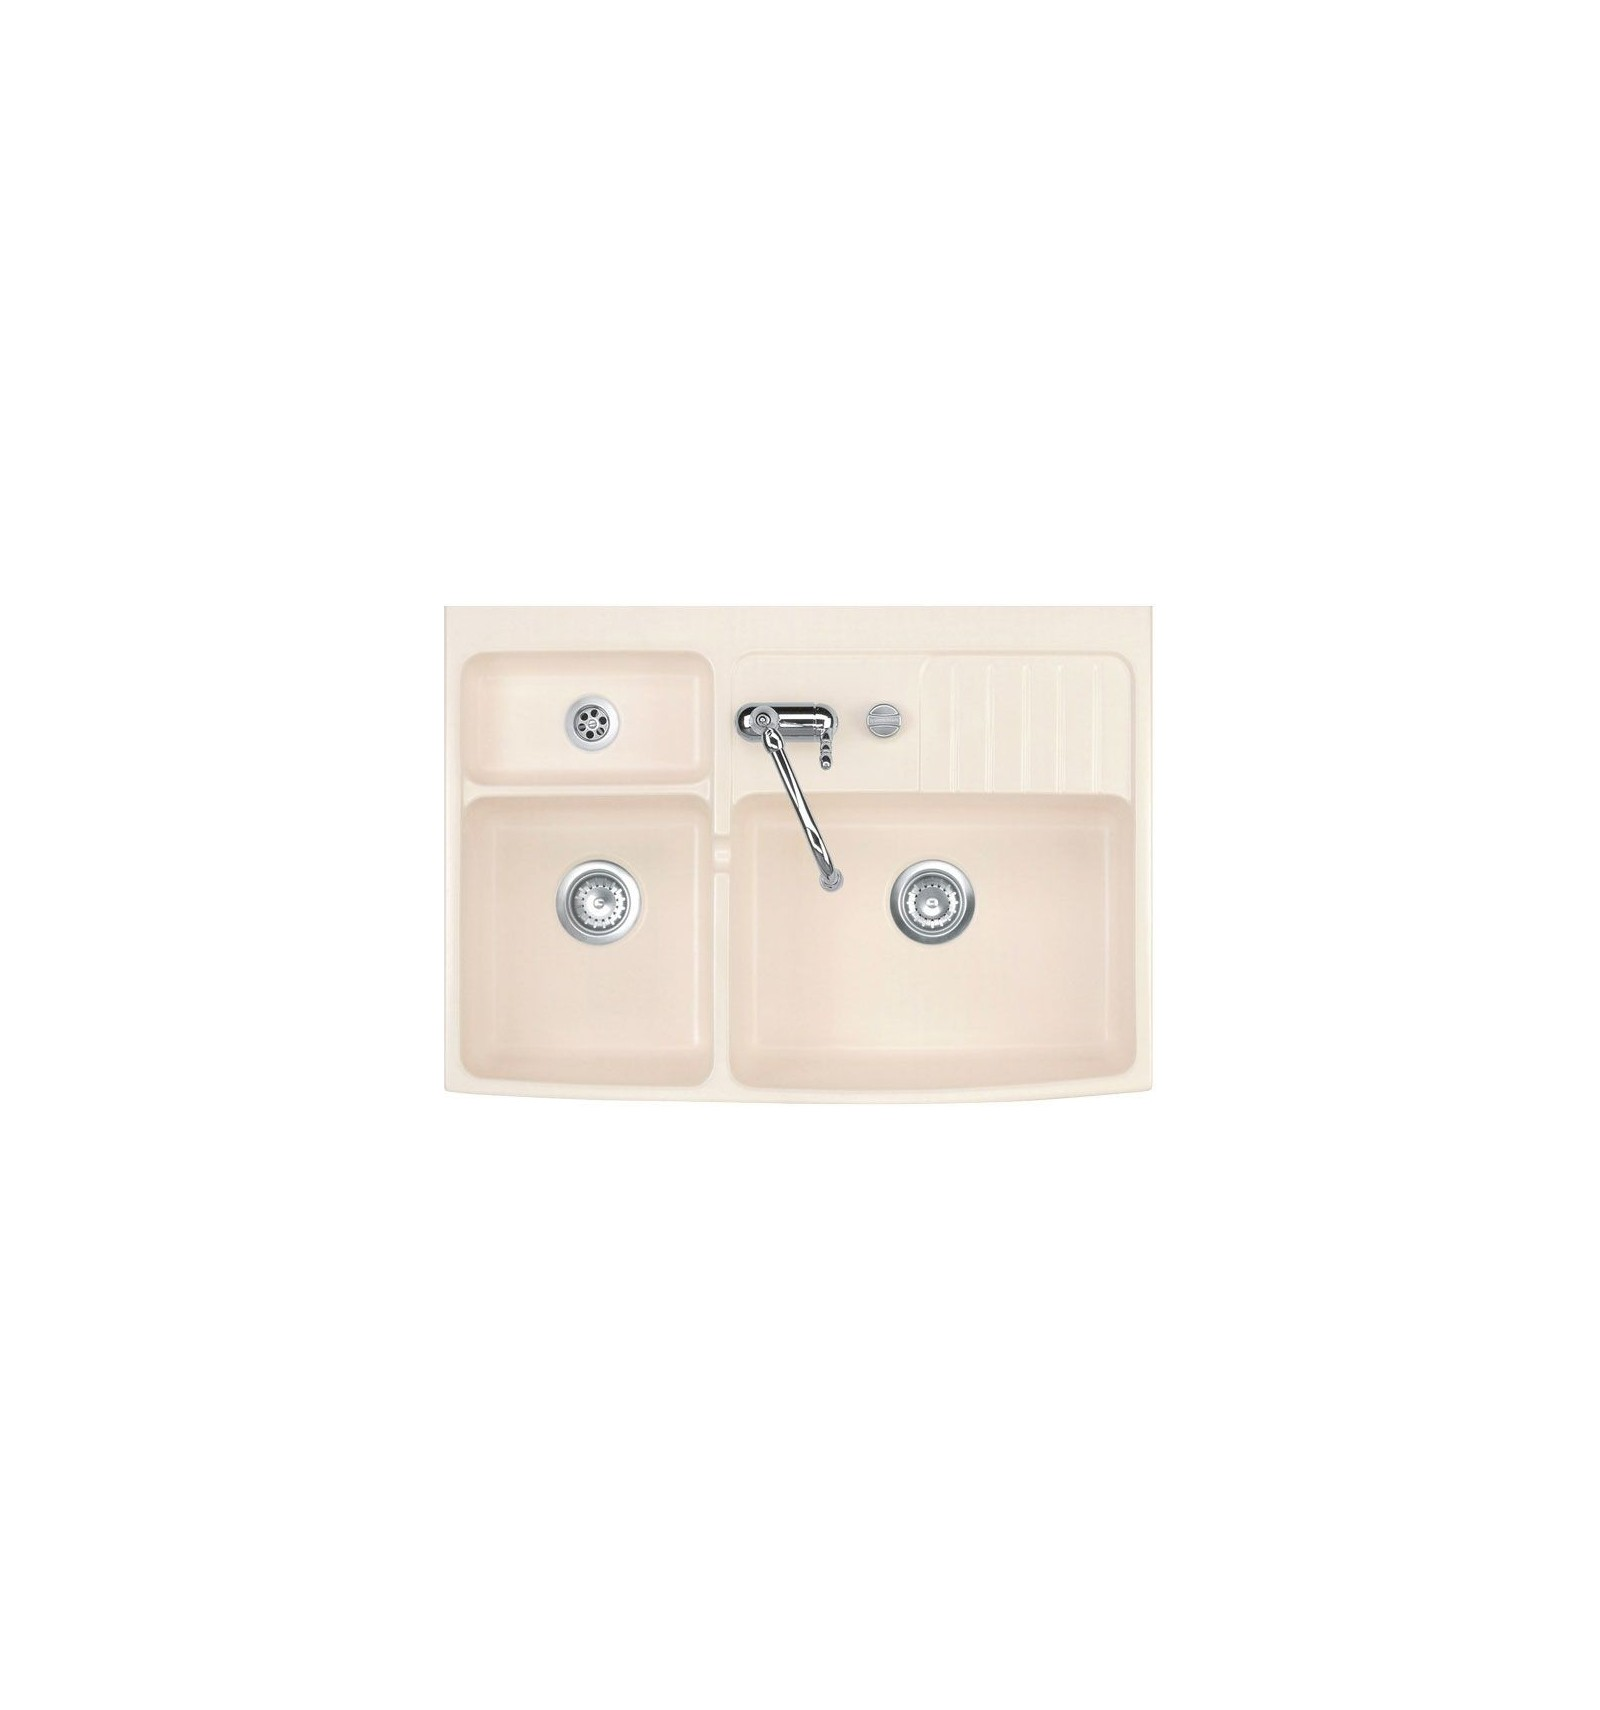 kitchen sink picture systemceram keradomo centra 90 ceramic kitchen sink 2820